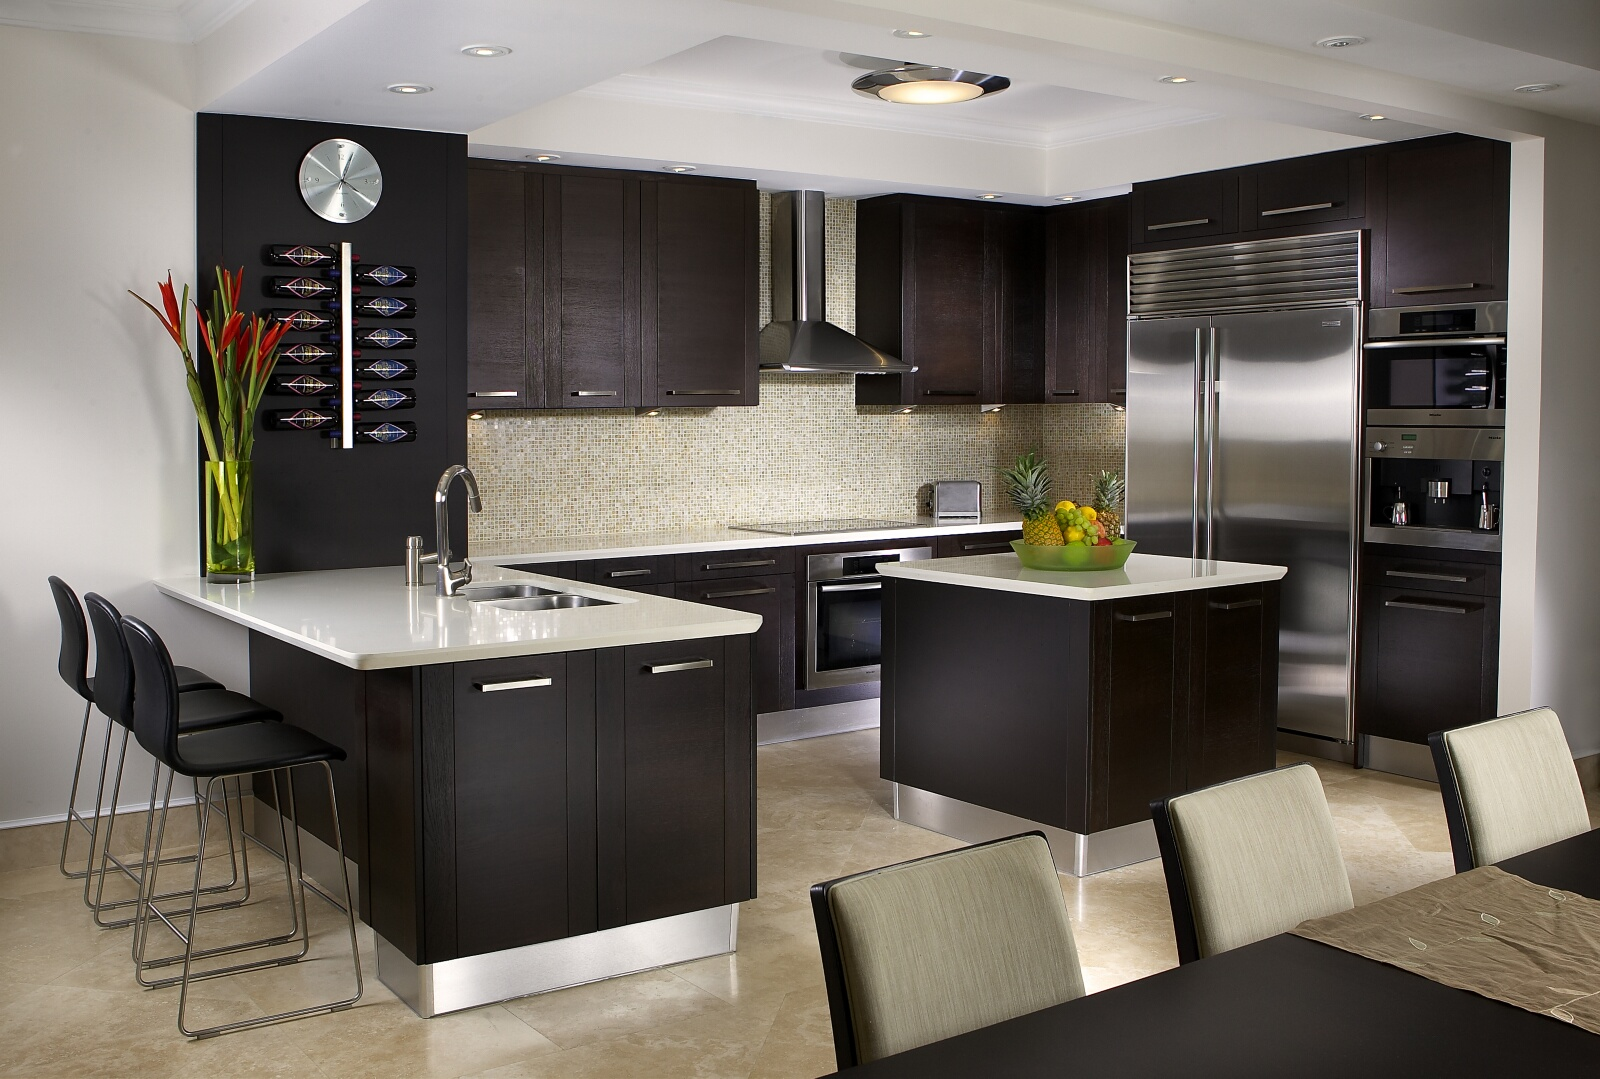 Kitchen interior design services miami florida for Kitchen interior design pictures